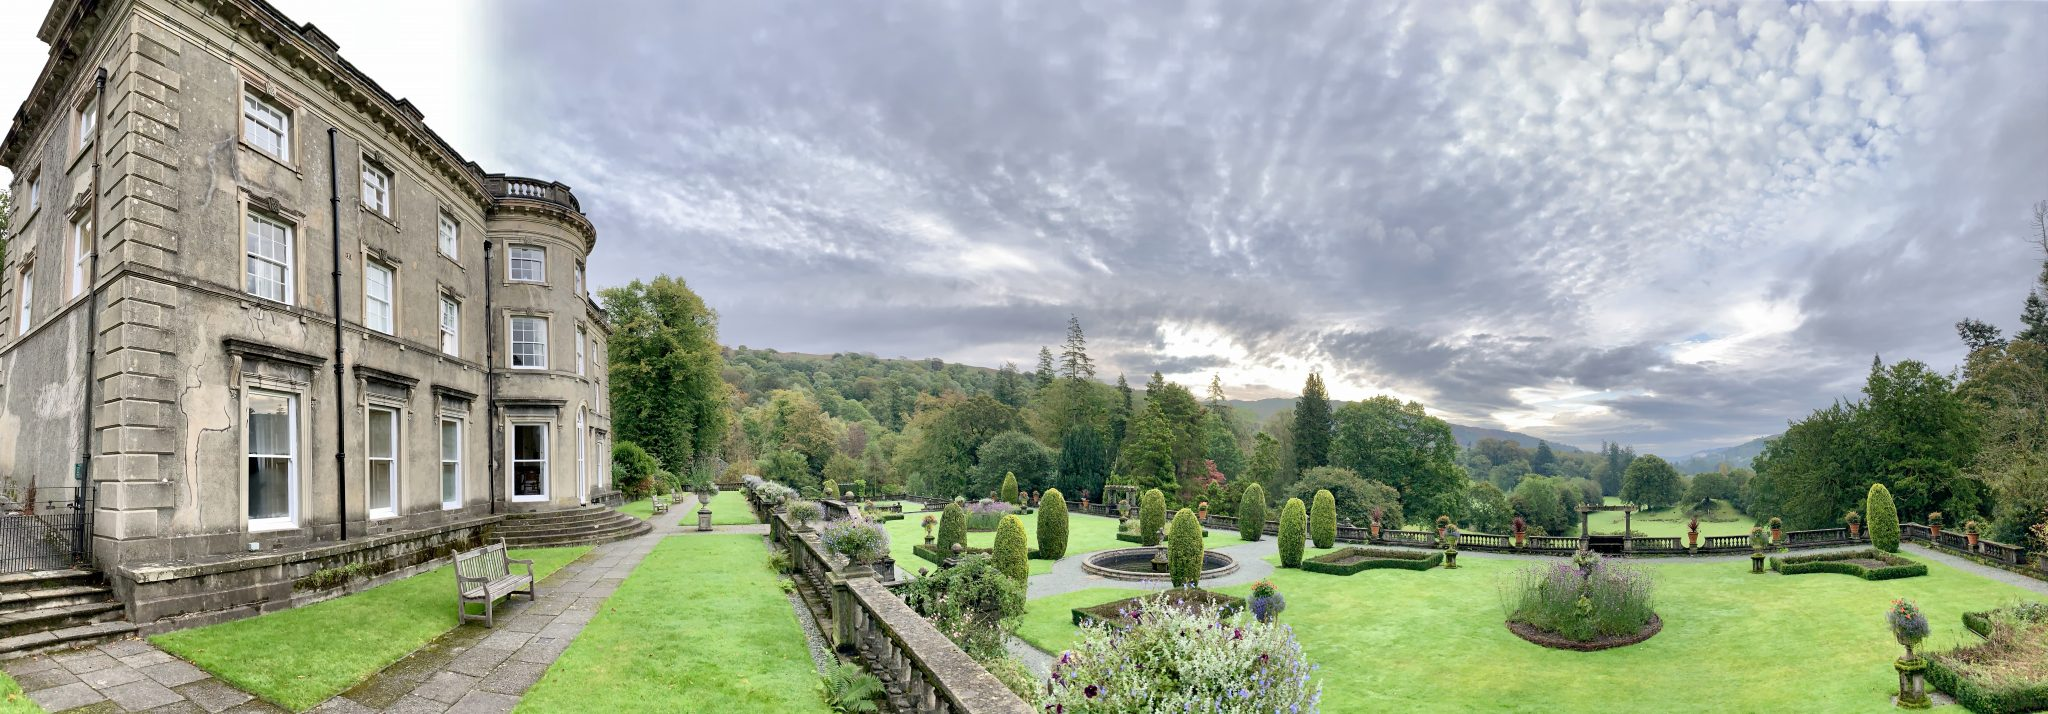 October Break at Rydal Hall